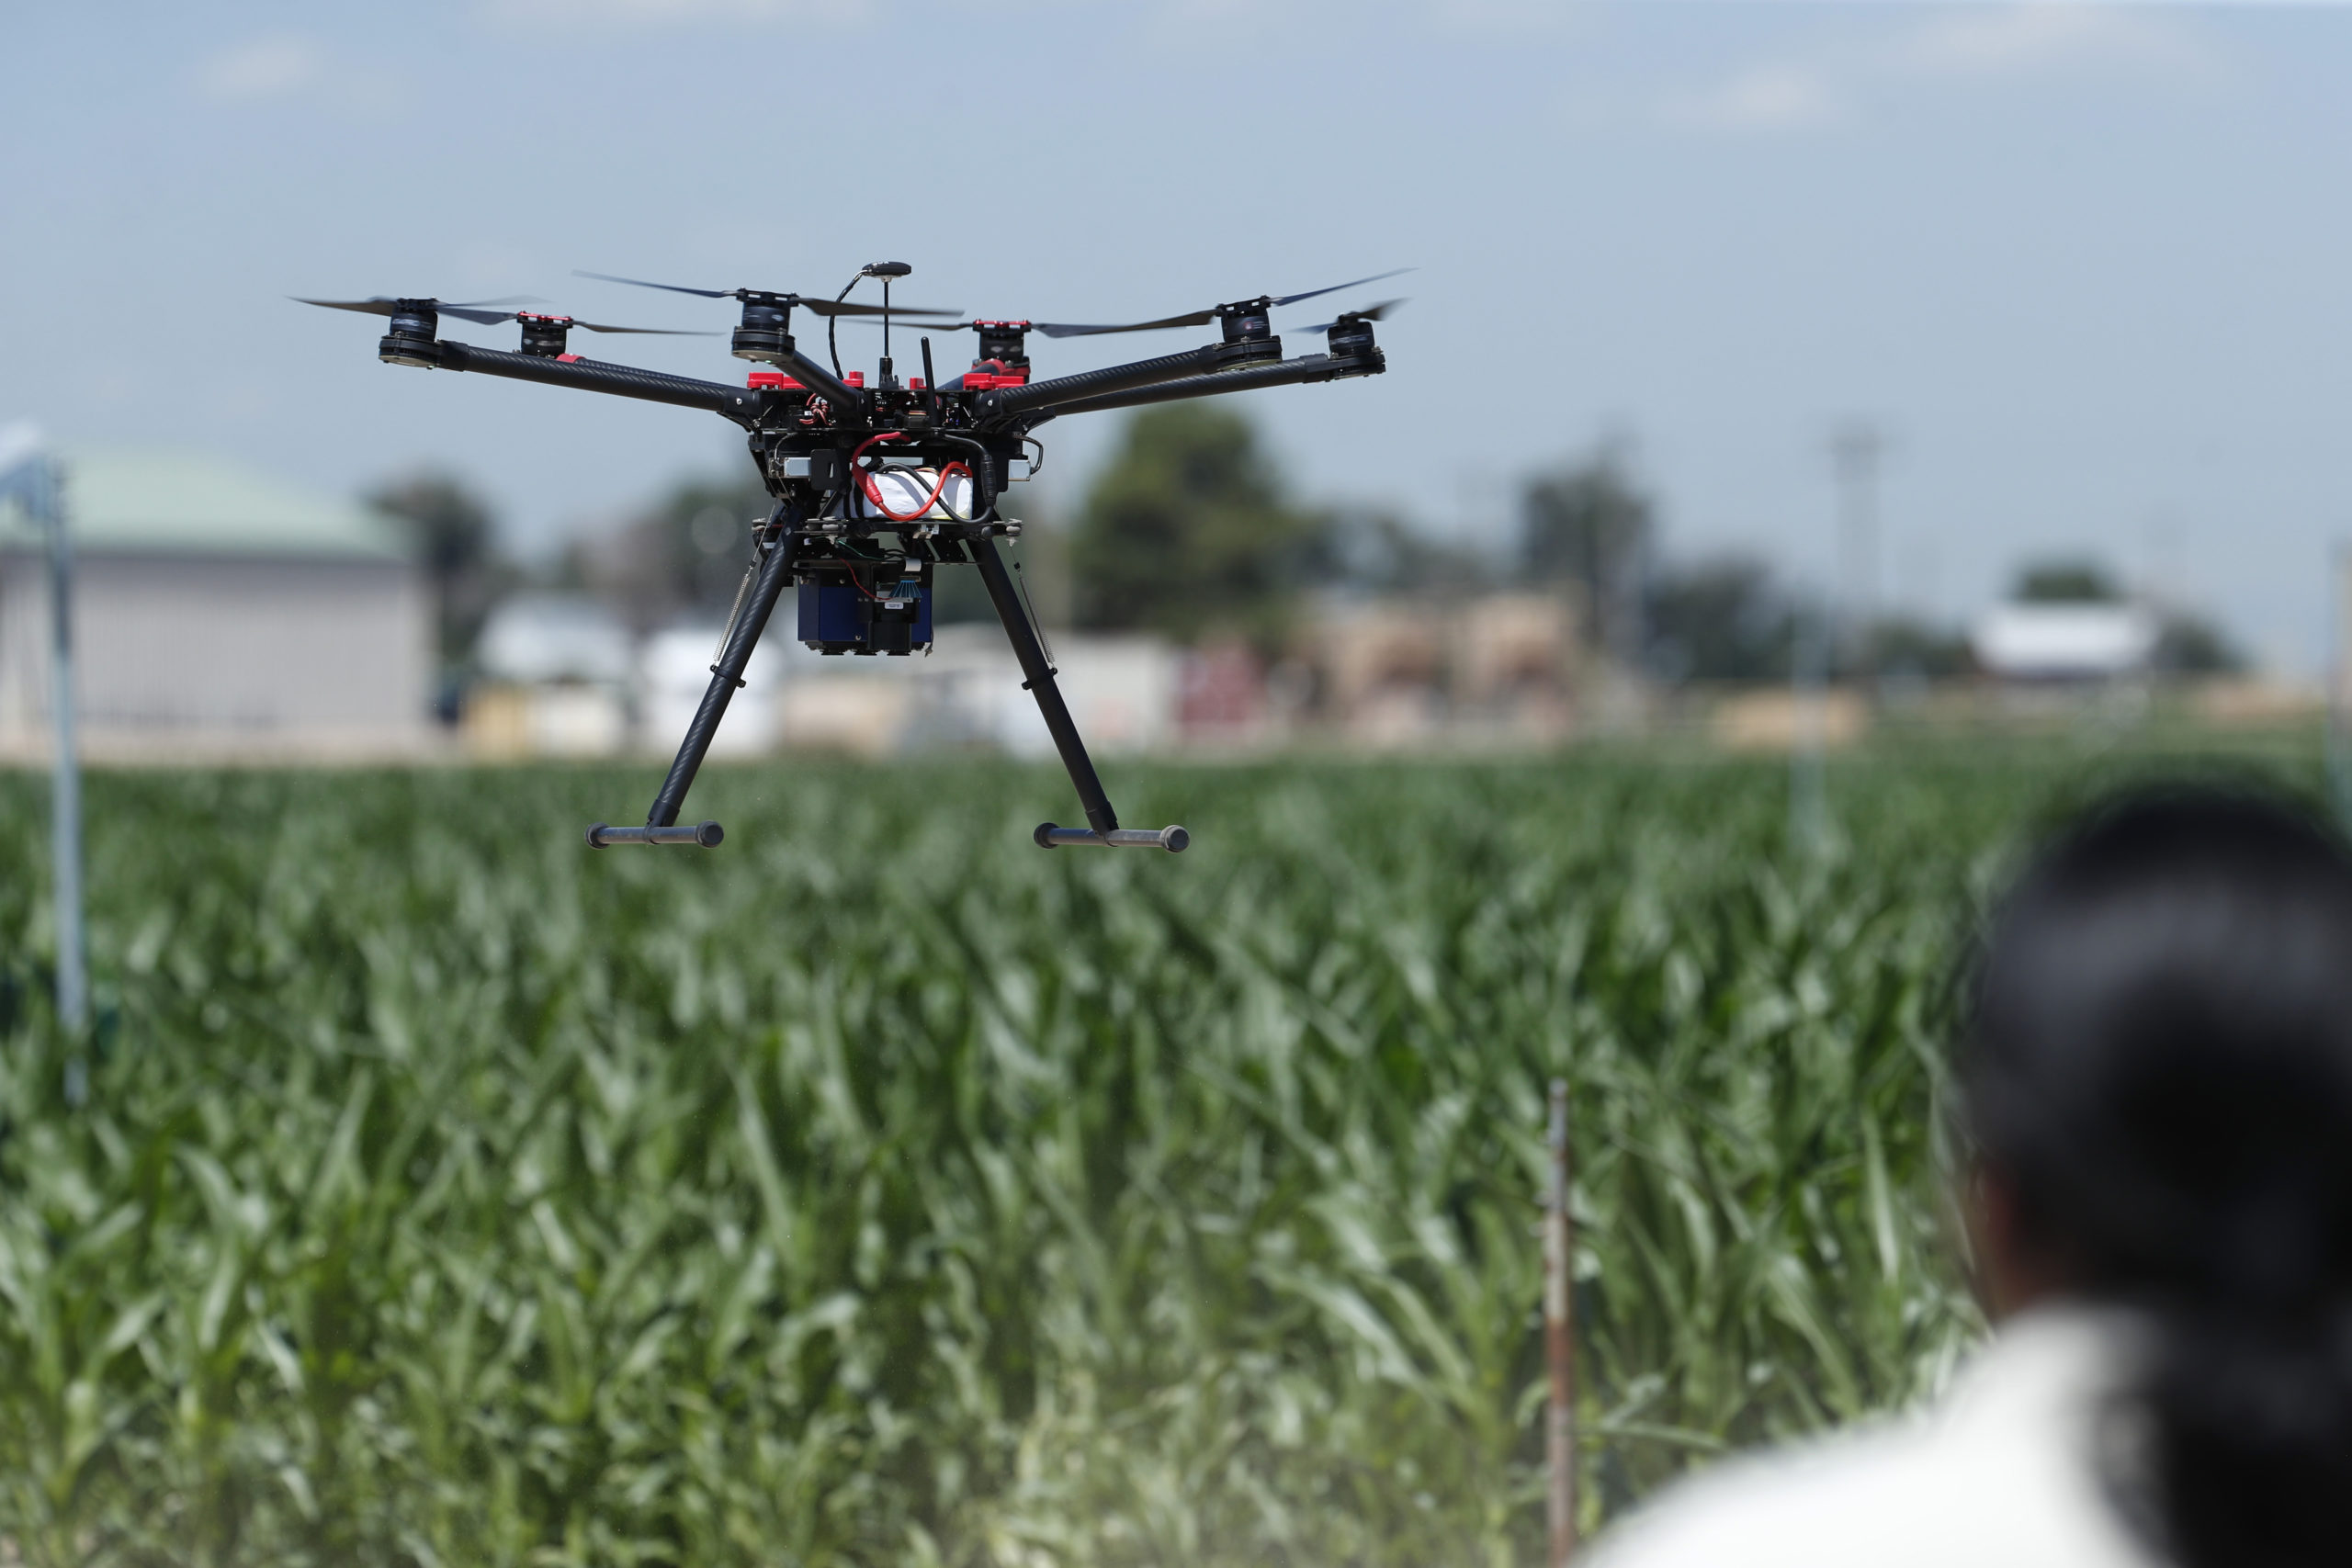 United States Department of Agriculture engineering technician Kevin Yemoto guides a drone into the air at a research farm northeast of Greeley, Colo., July 11, 2019.